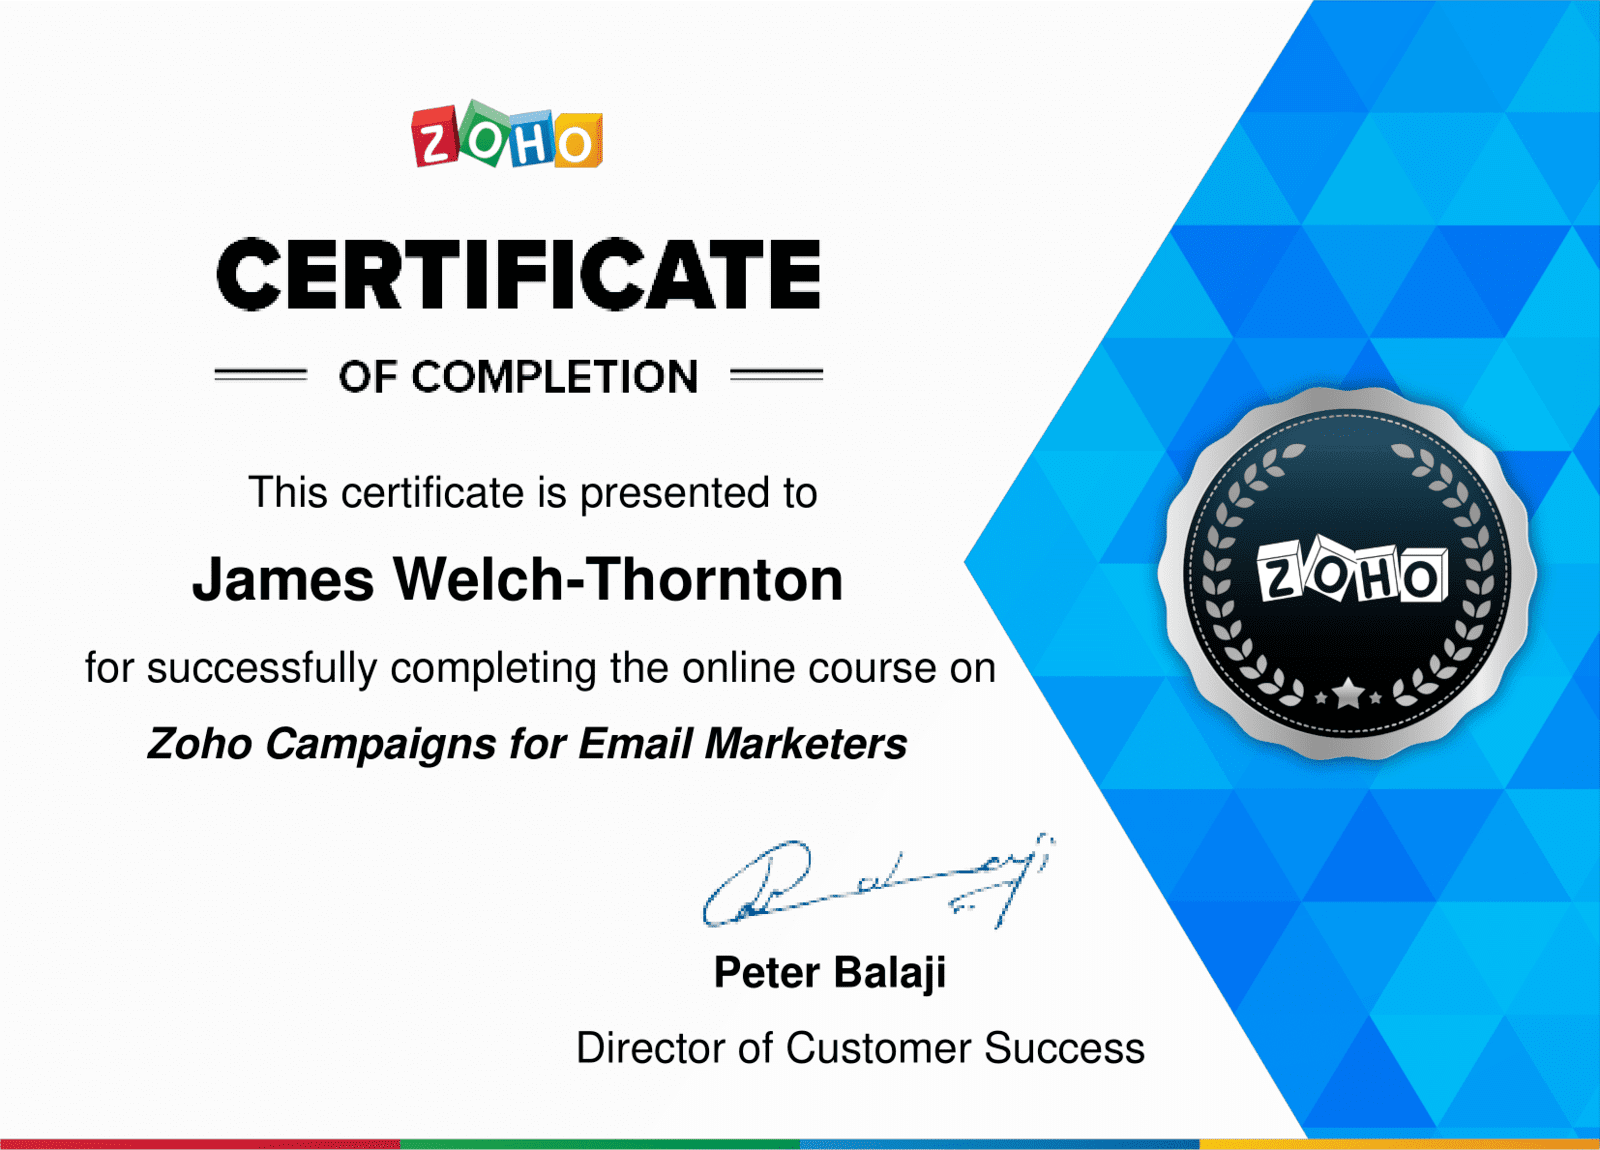 Zoho Campaigns for Email Marketers Certificate